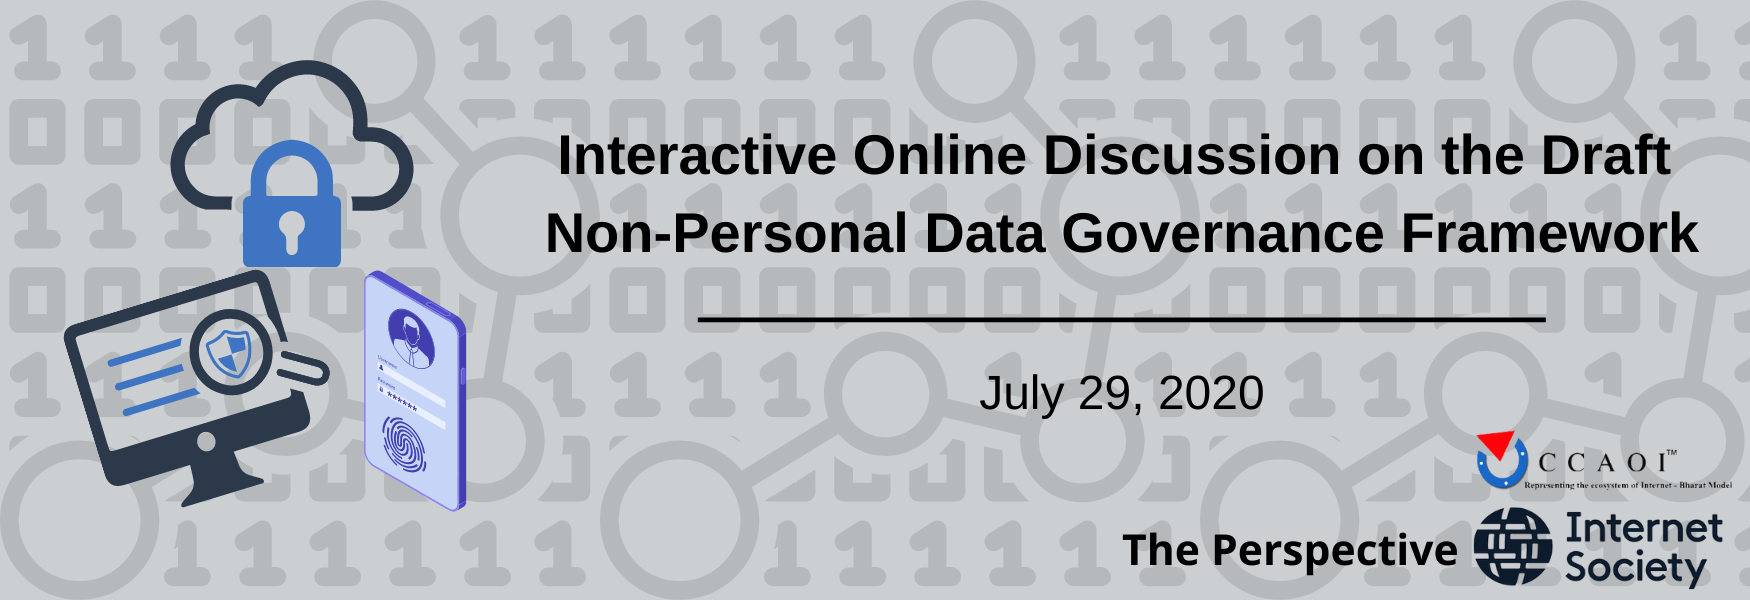 Interactive Online Discussion on the Draft Non-Personal Data Governance Framework